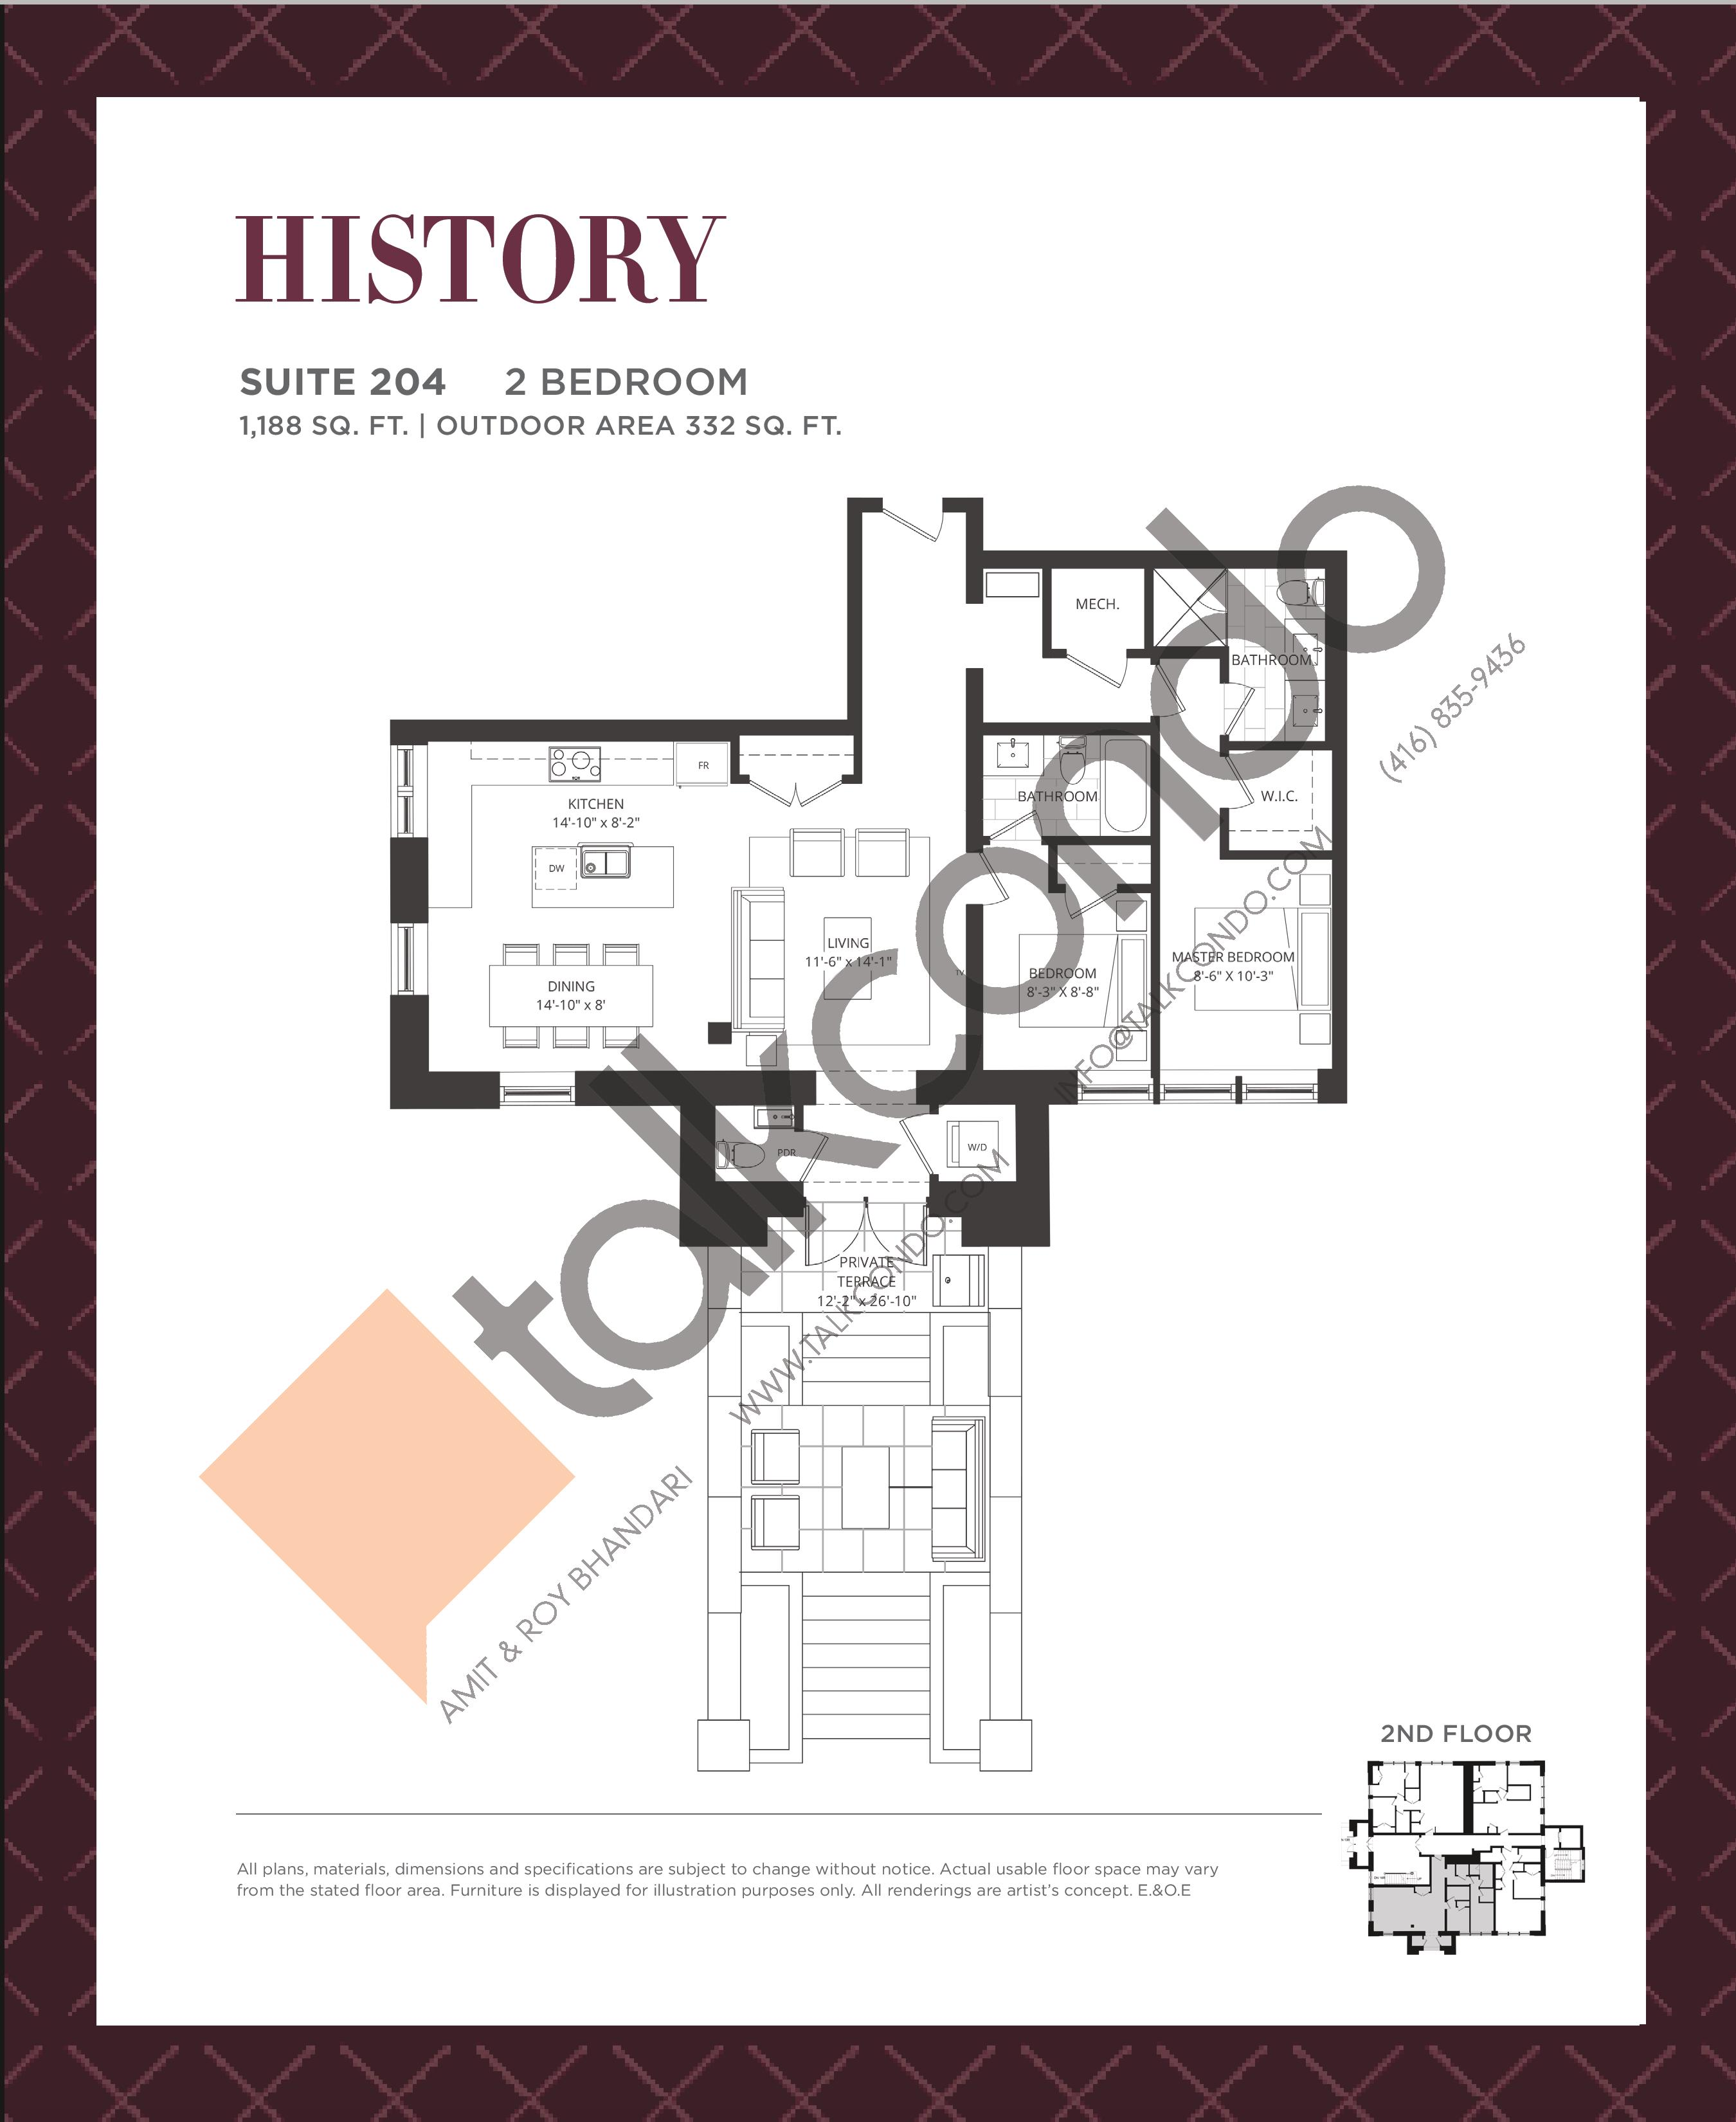 History Floor Plan at King George School Lofts & Town Homes - 1188 sq.ft